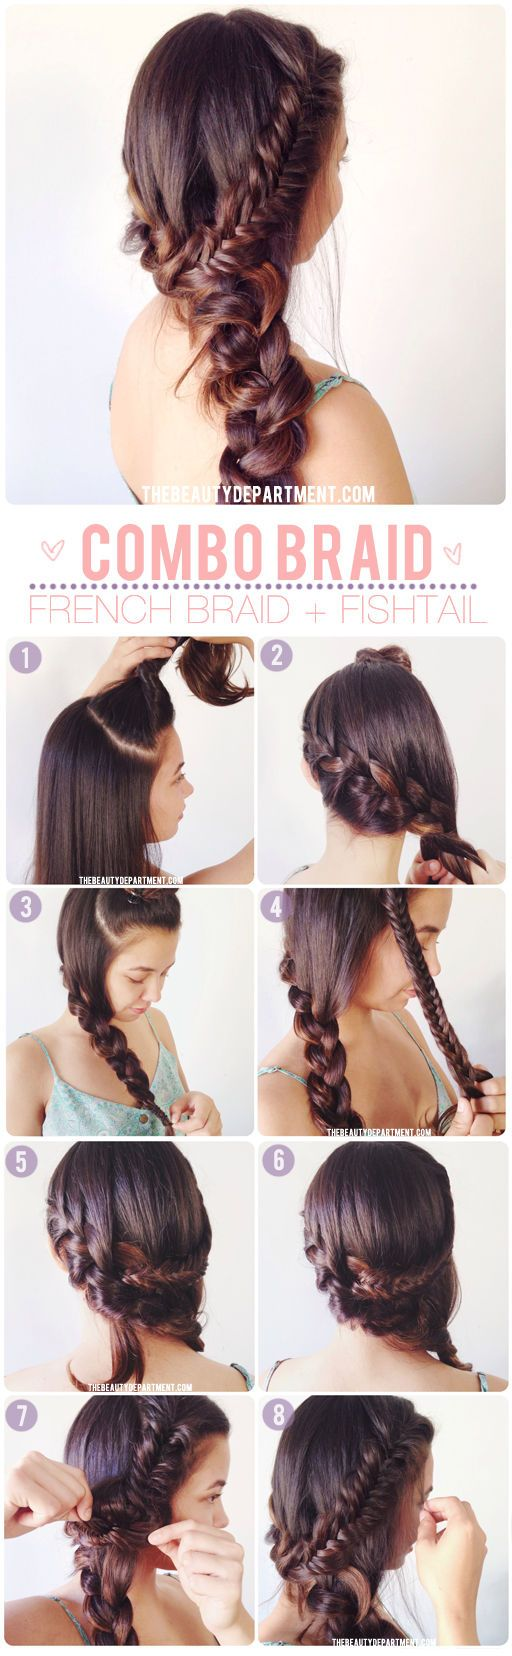 French braiding tips - Gorgeous Messy Long Hair Fishtail French Braid Bohemian Chic Hair Tutorial Diy Pinup